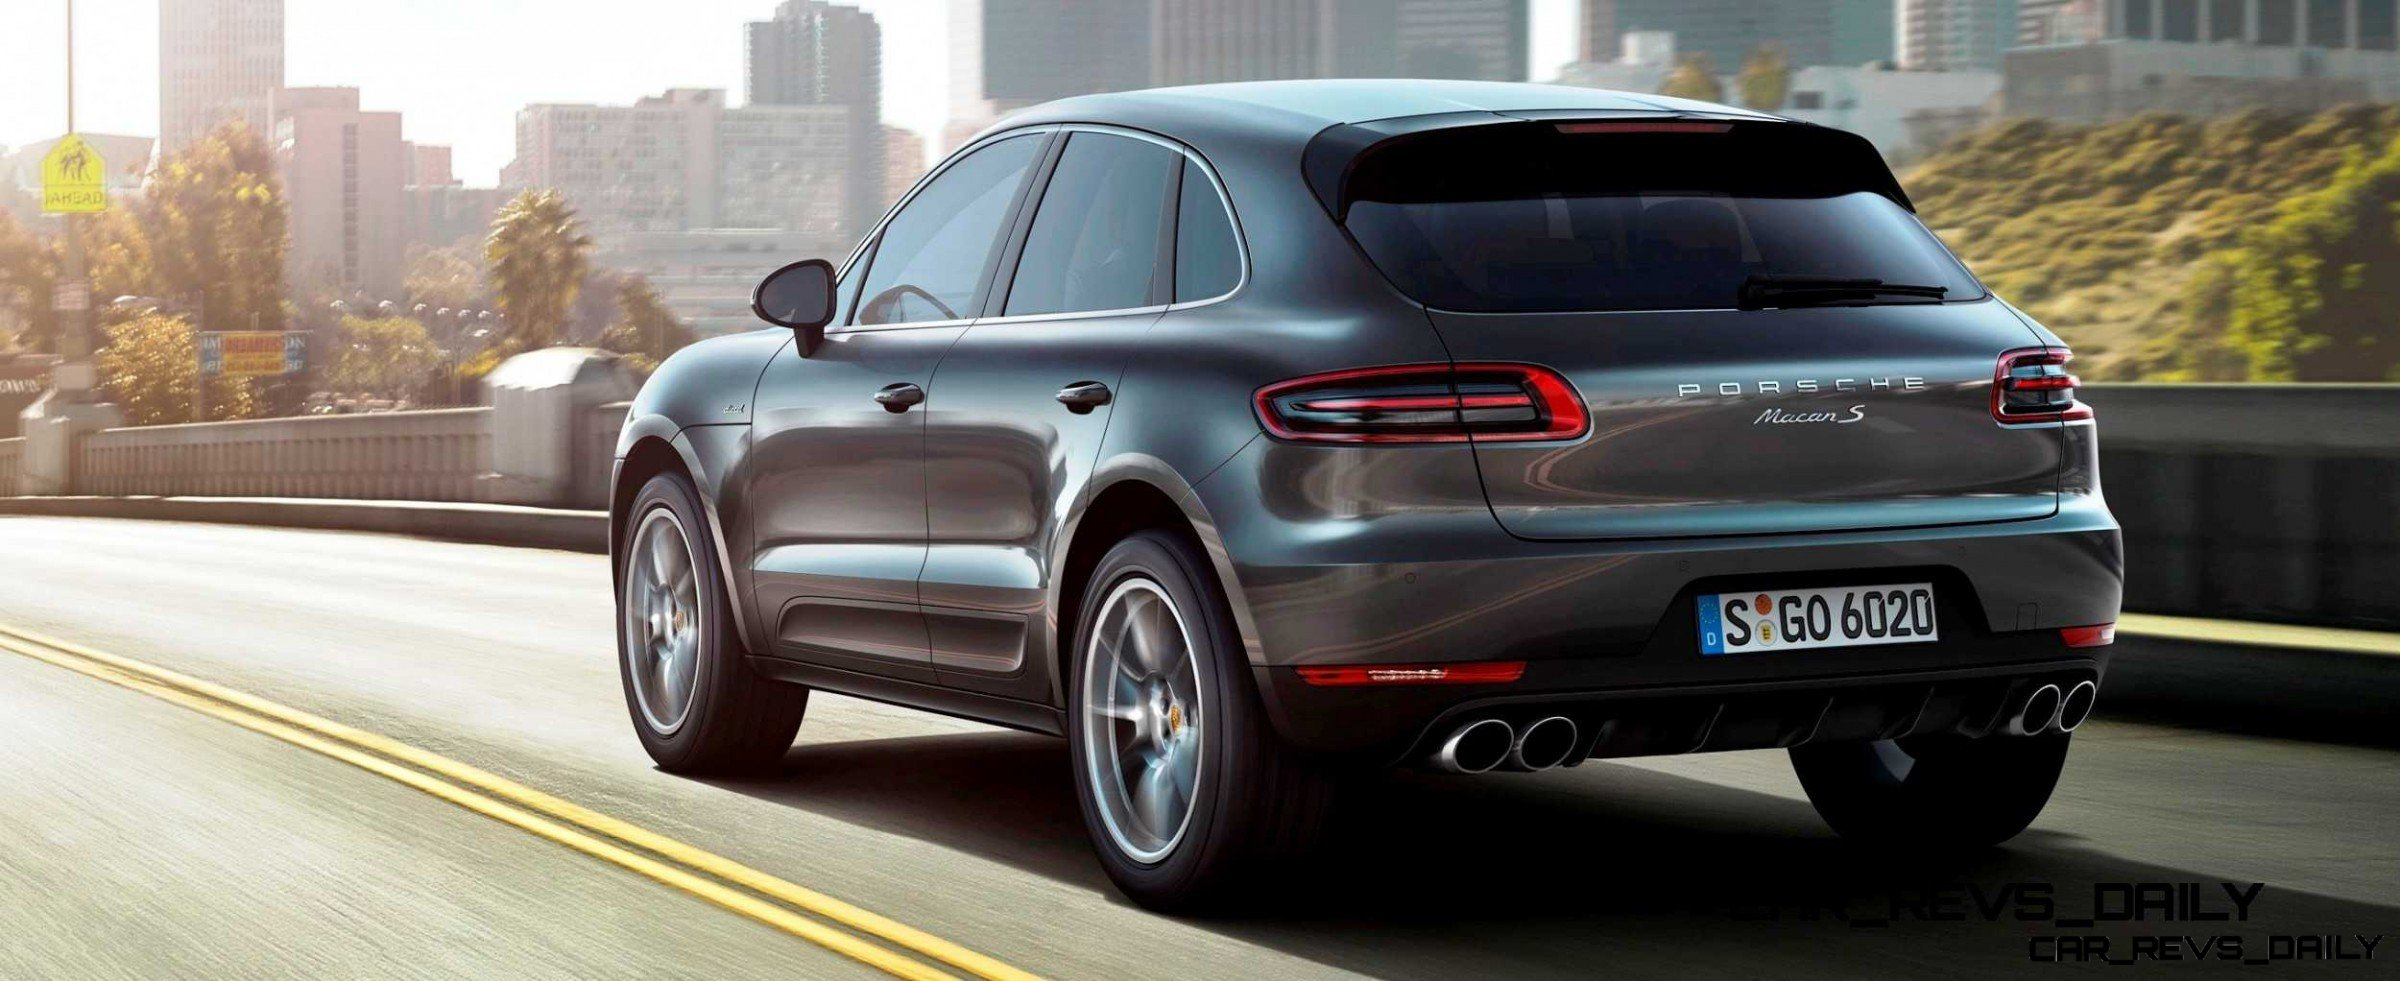 2014 Porsche Macan Turbo and Macan S - Official Debut Photos9